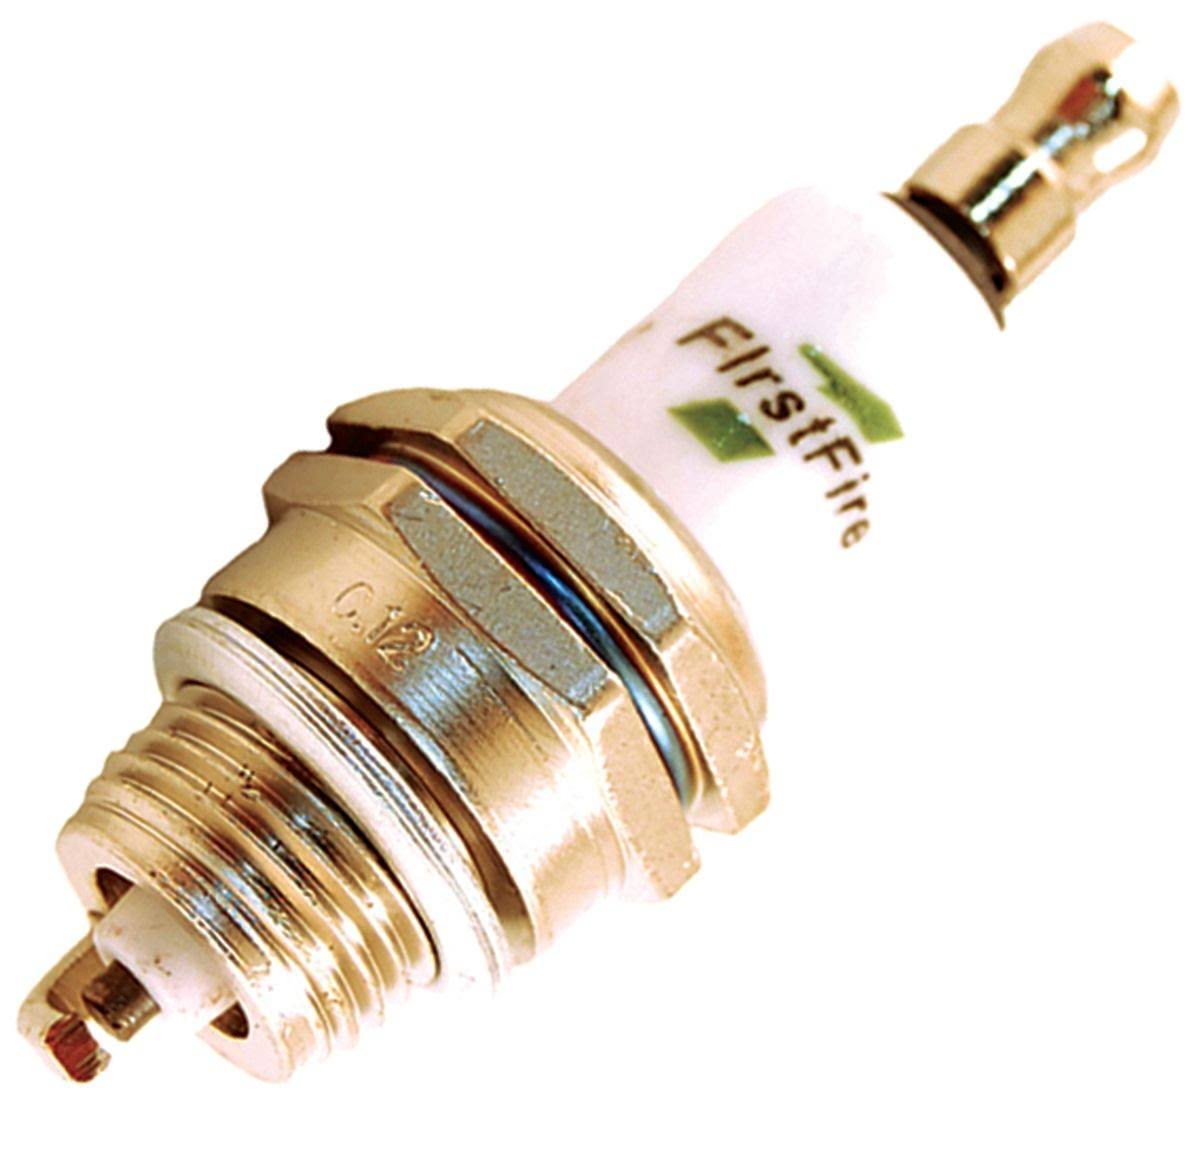 Arnold First Fire Ff13 Spark Plug